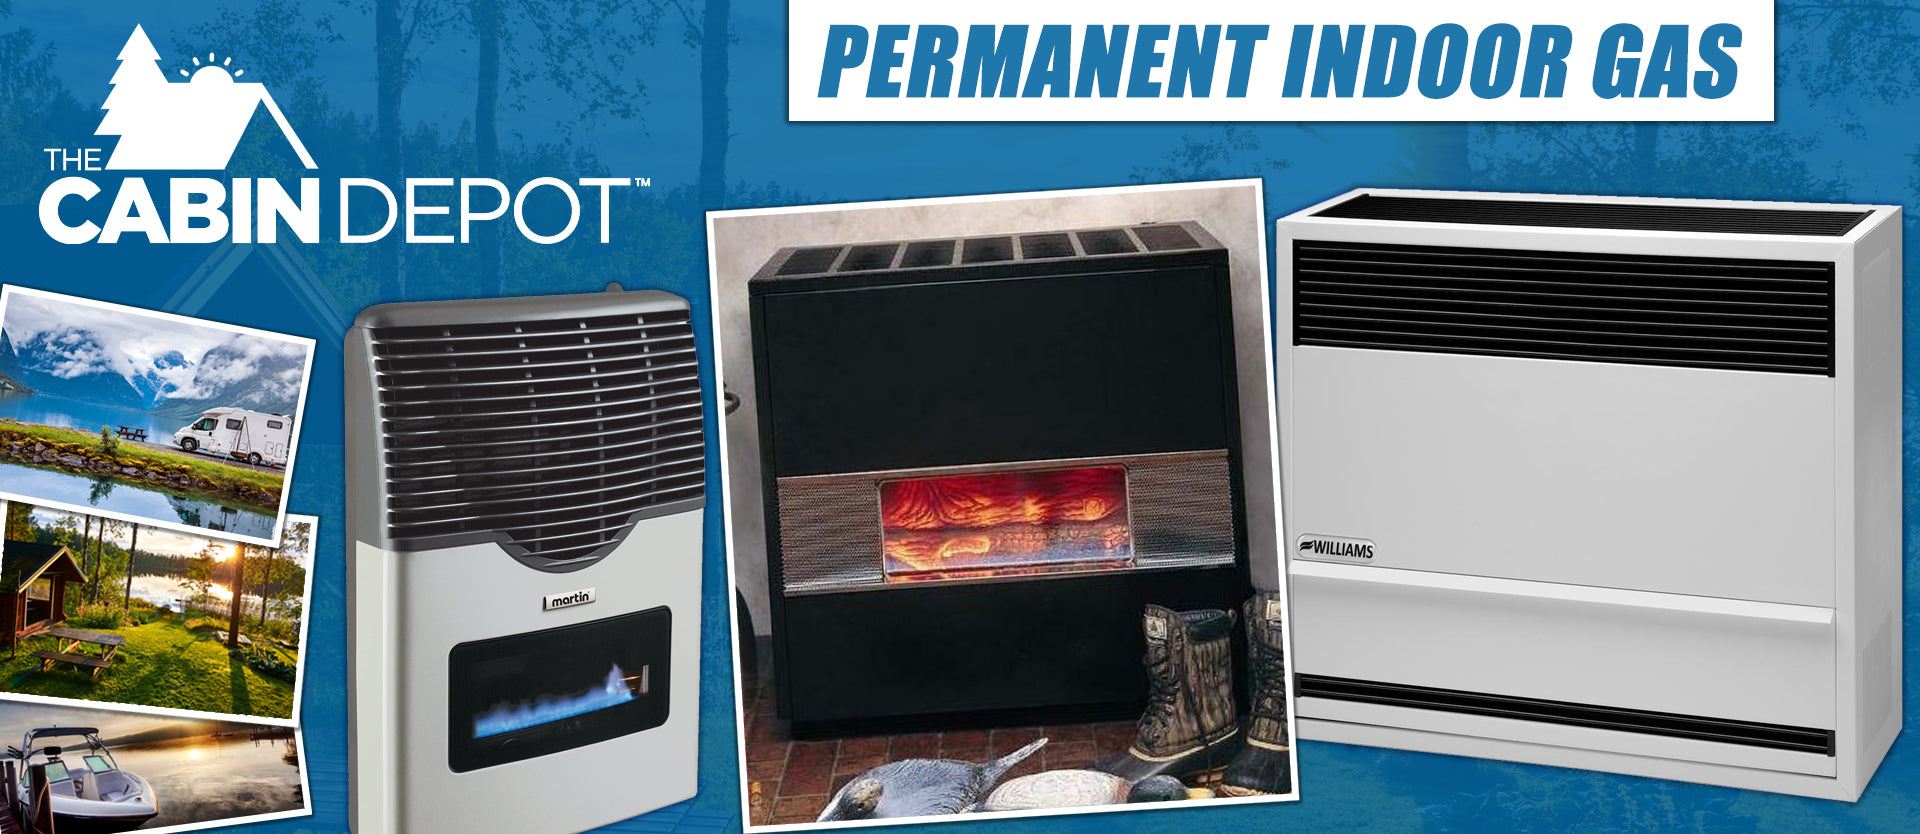 Indoor Gas Propane The Cabin Depot ™ Canada